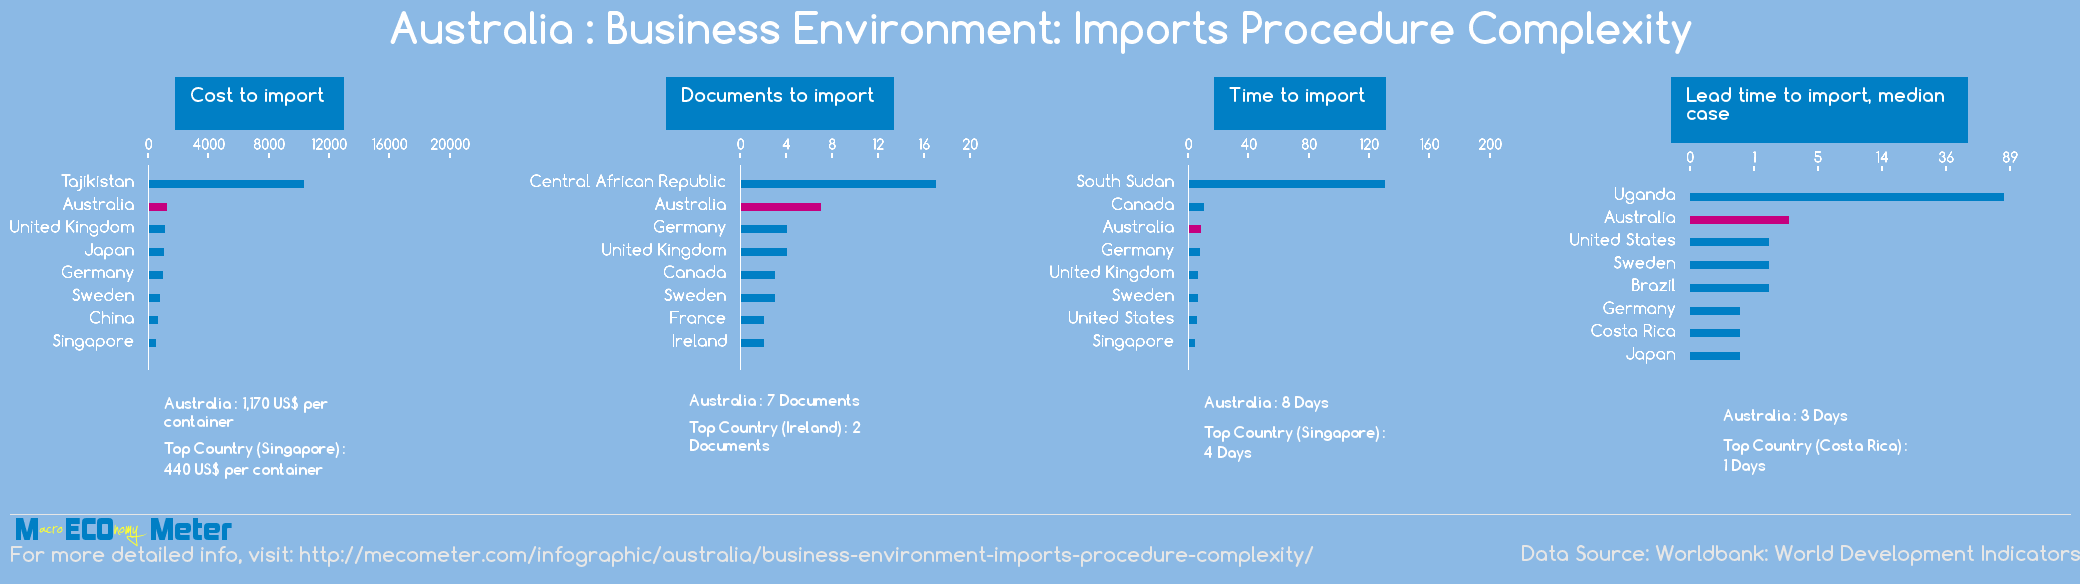 Australia : Business Environment: Imports Procedure Complexity